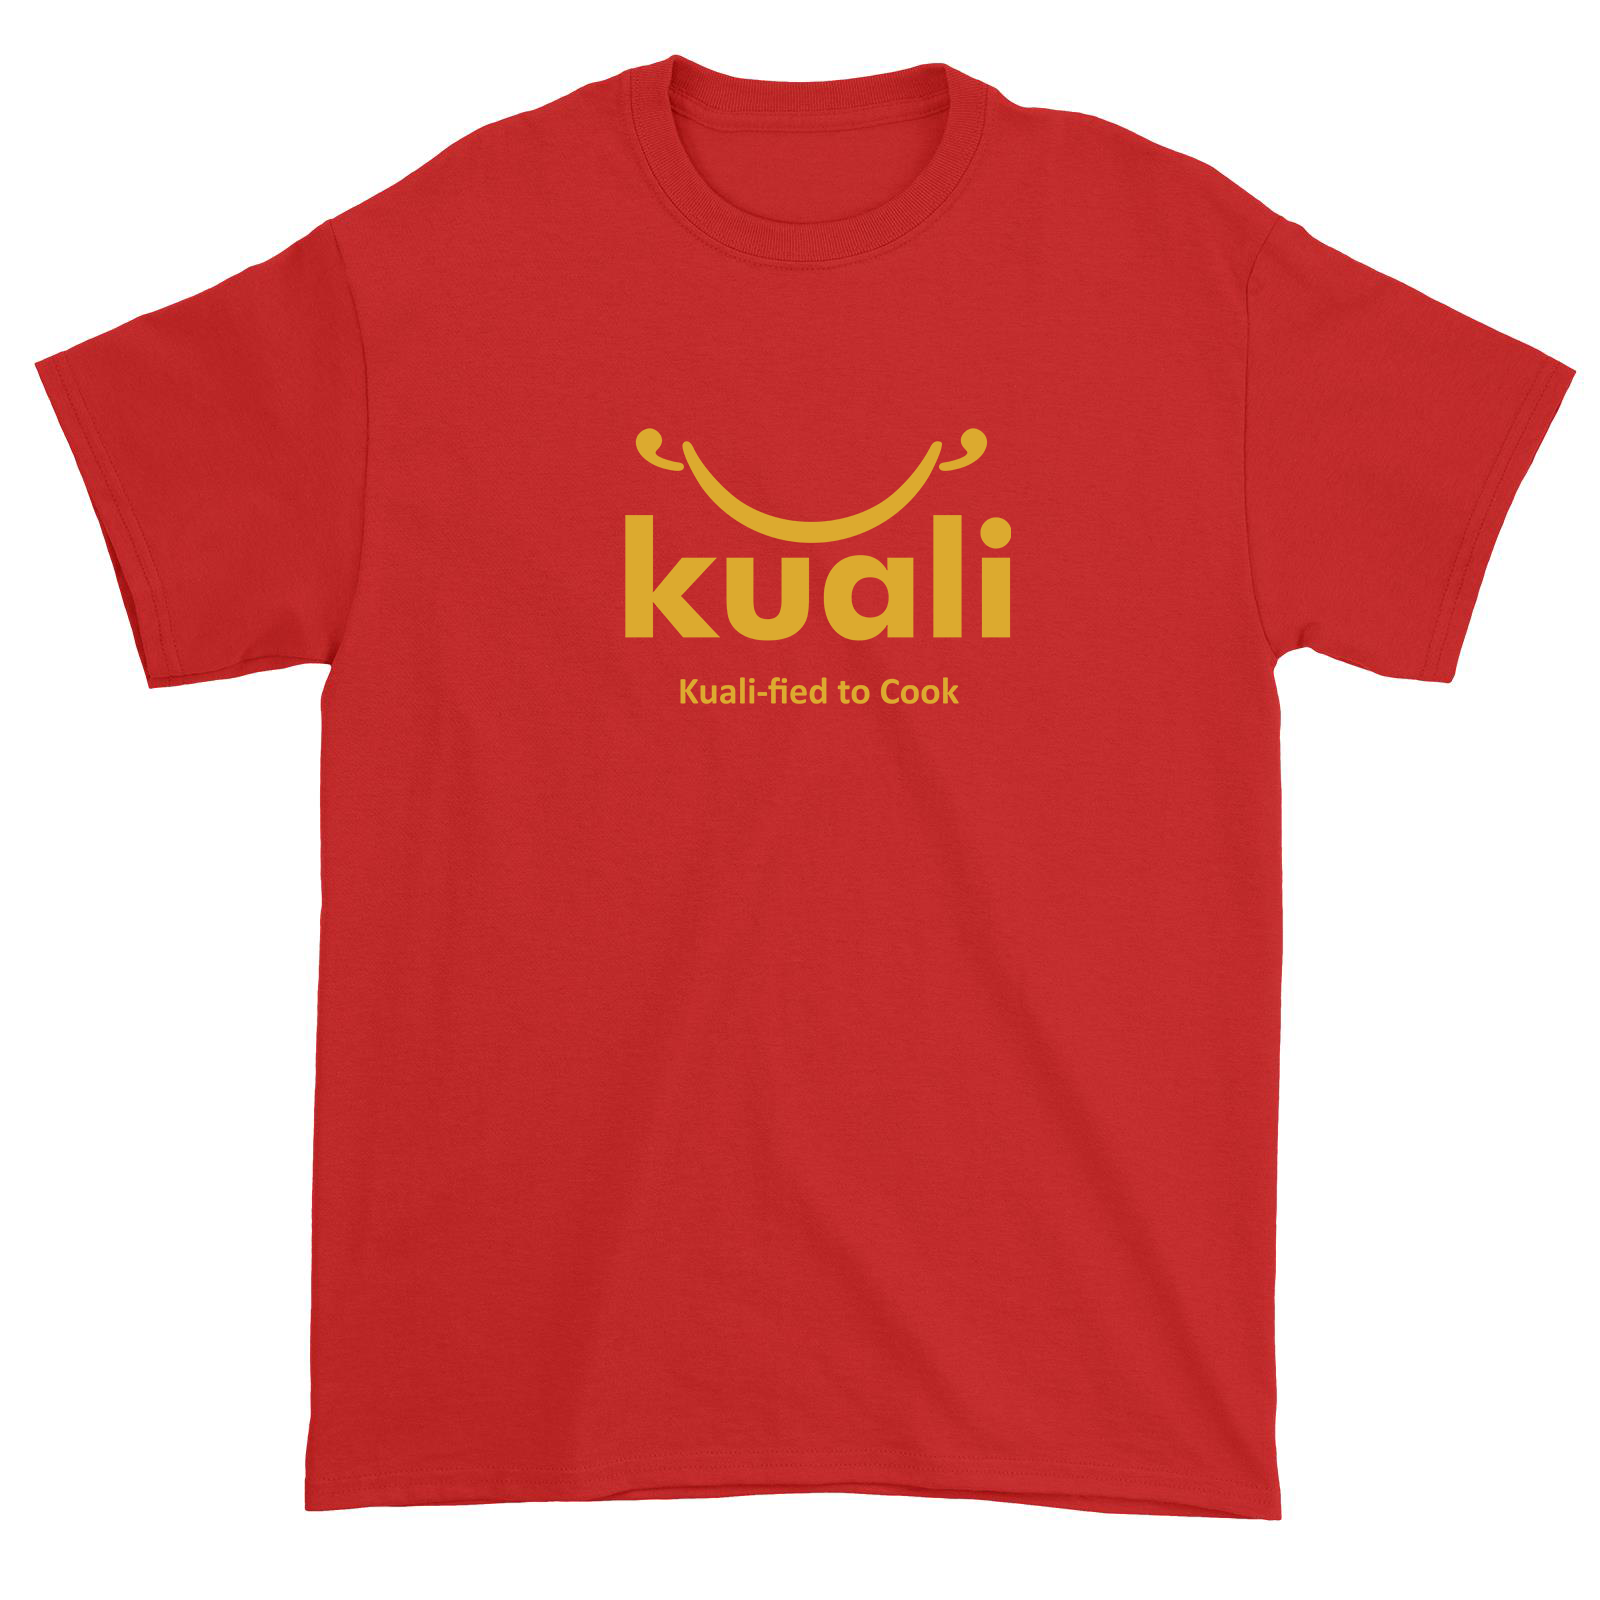 Kuali Cotton T-Shirt (Kuali-fied to Cook)